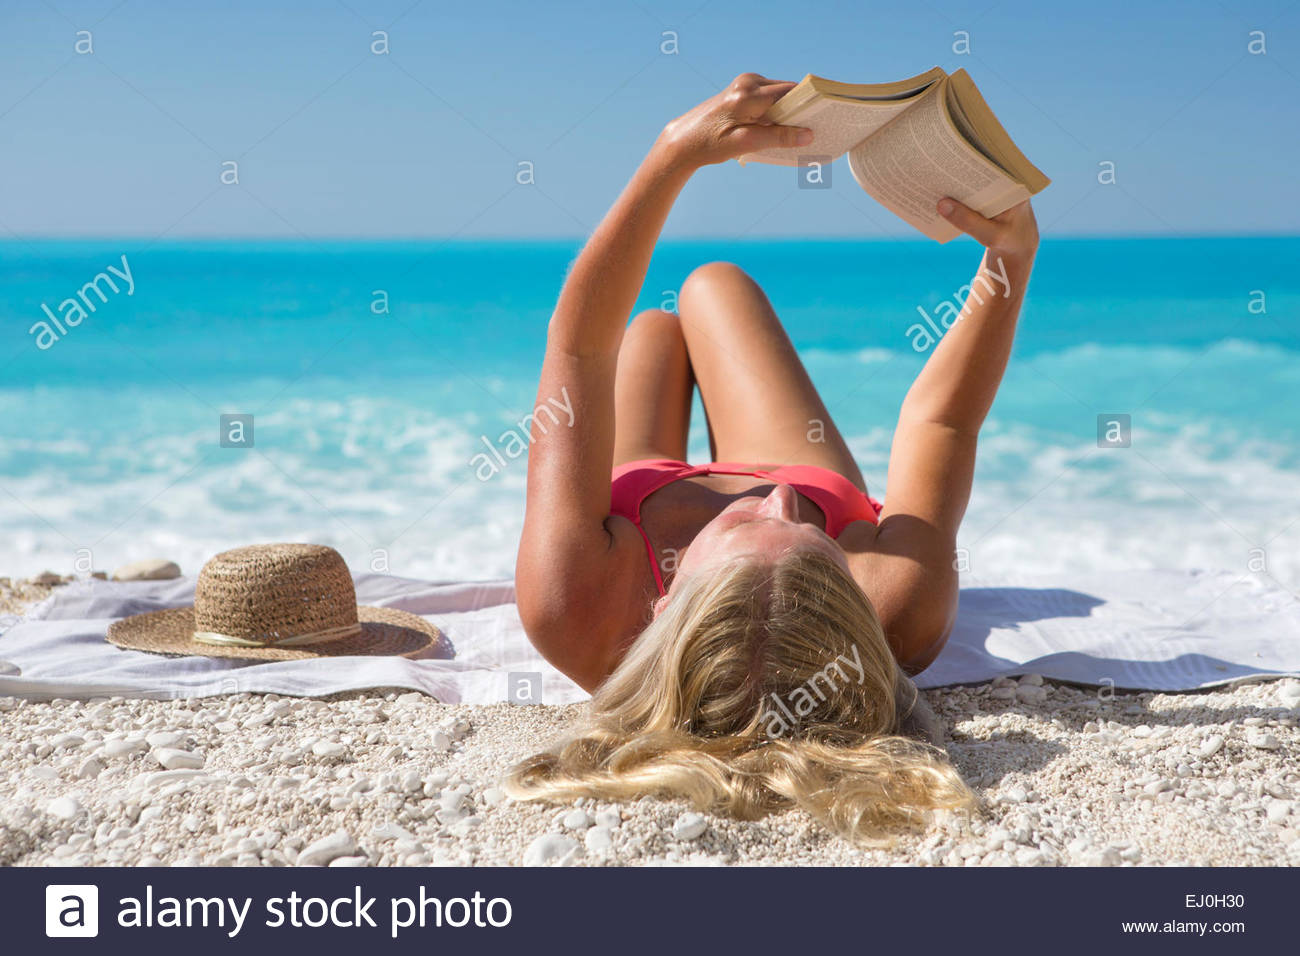 woman, reading book, lying on towel on sunny beach - Stock Image